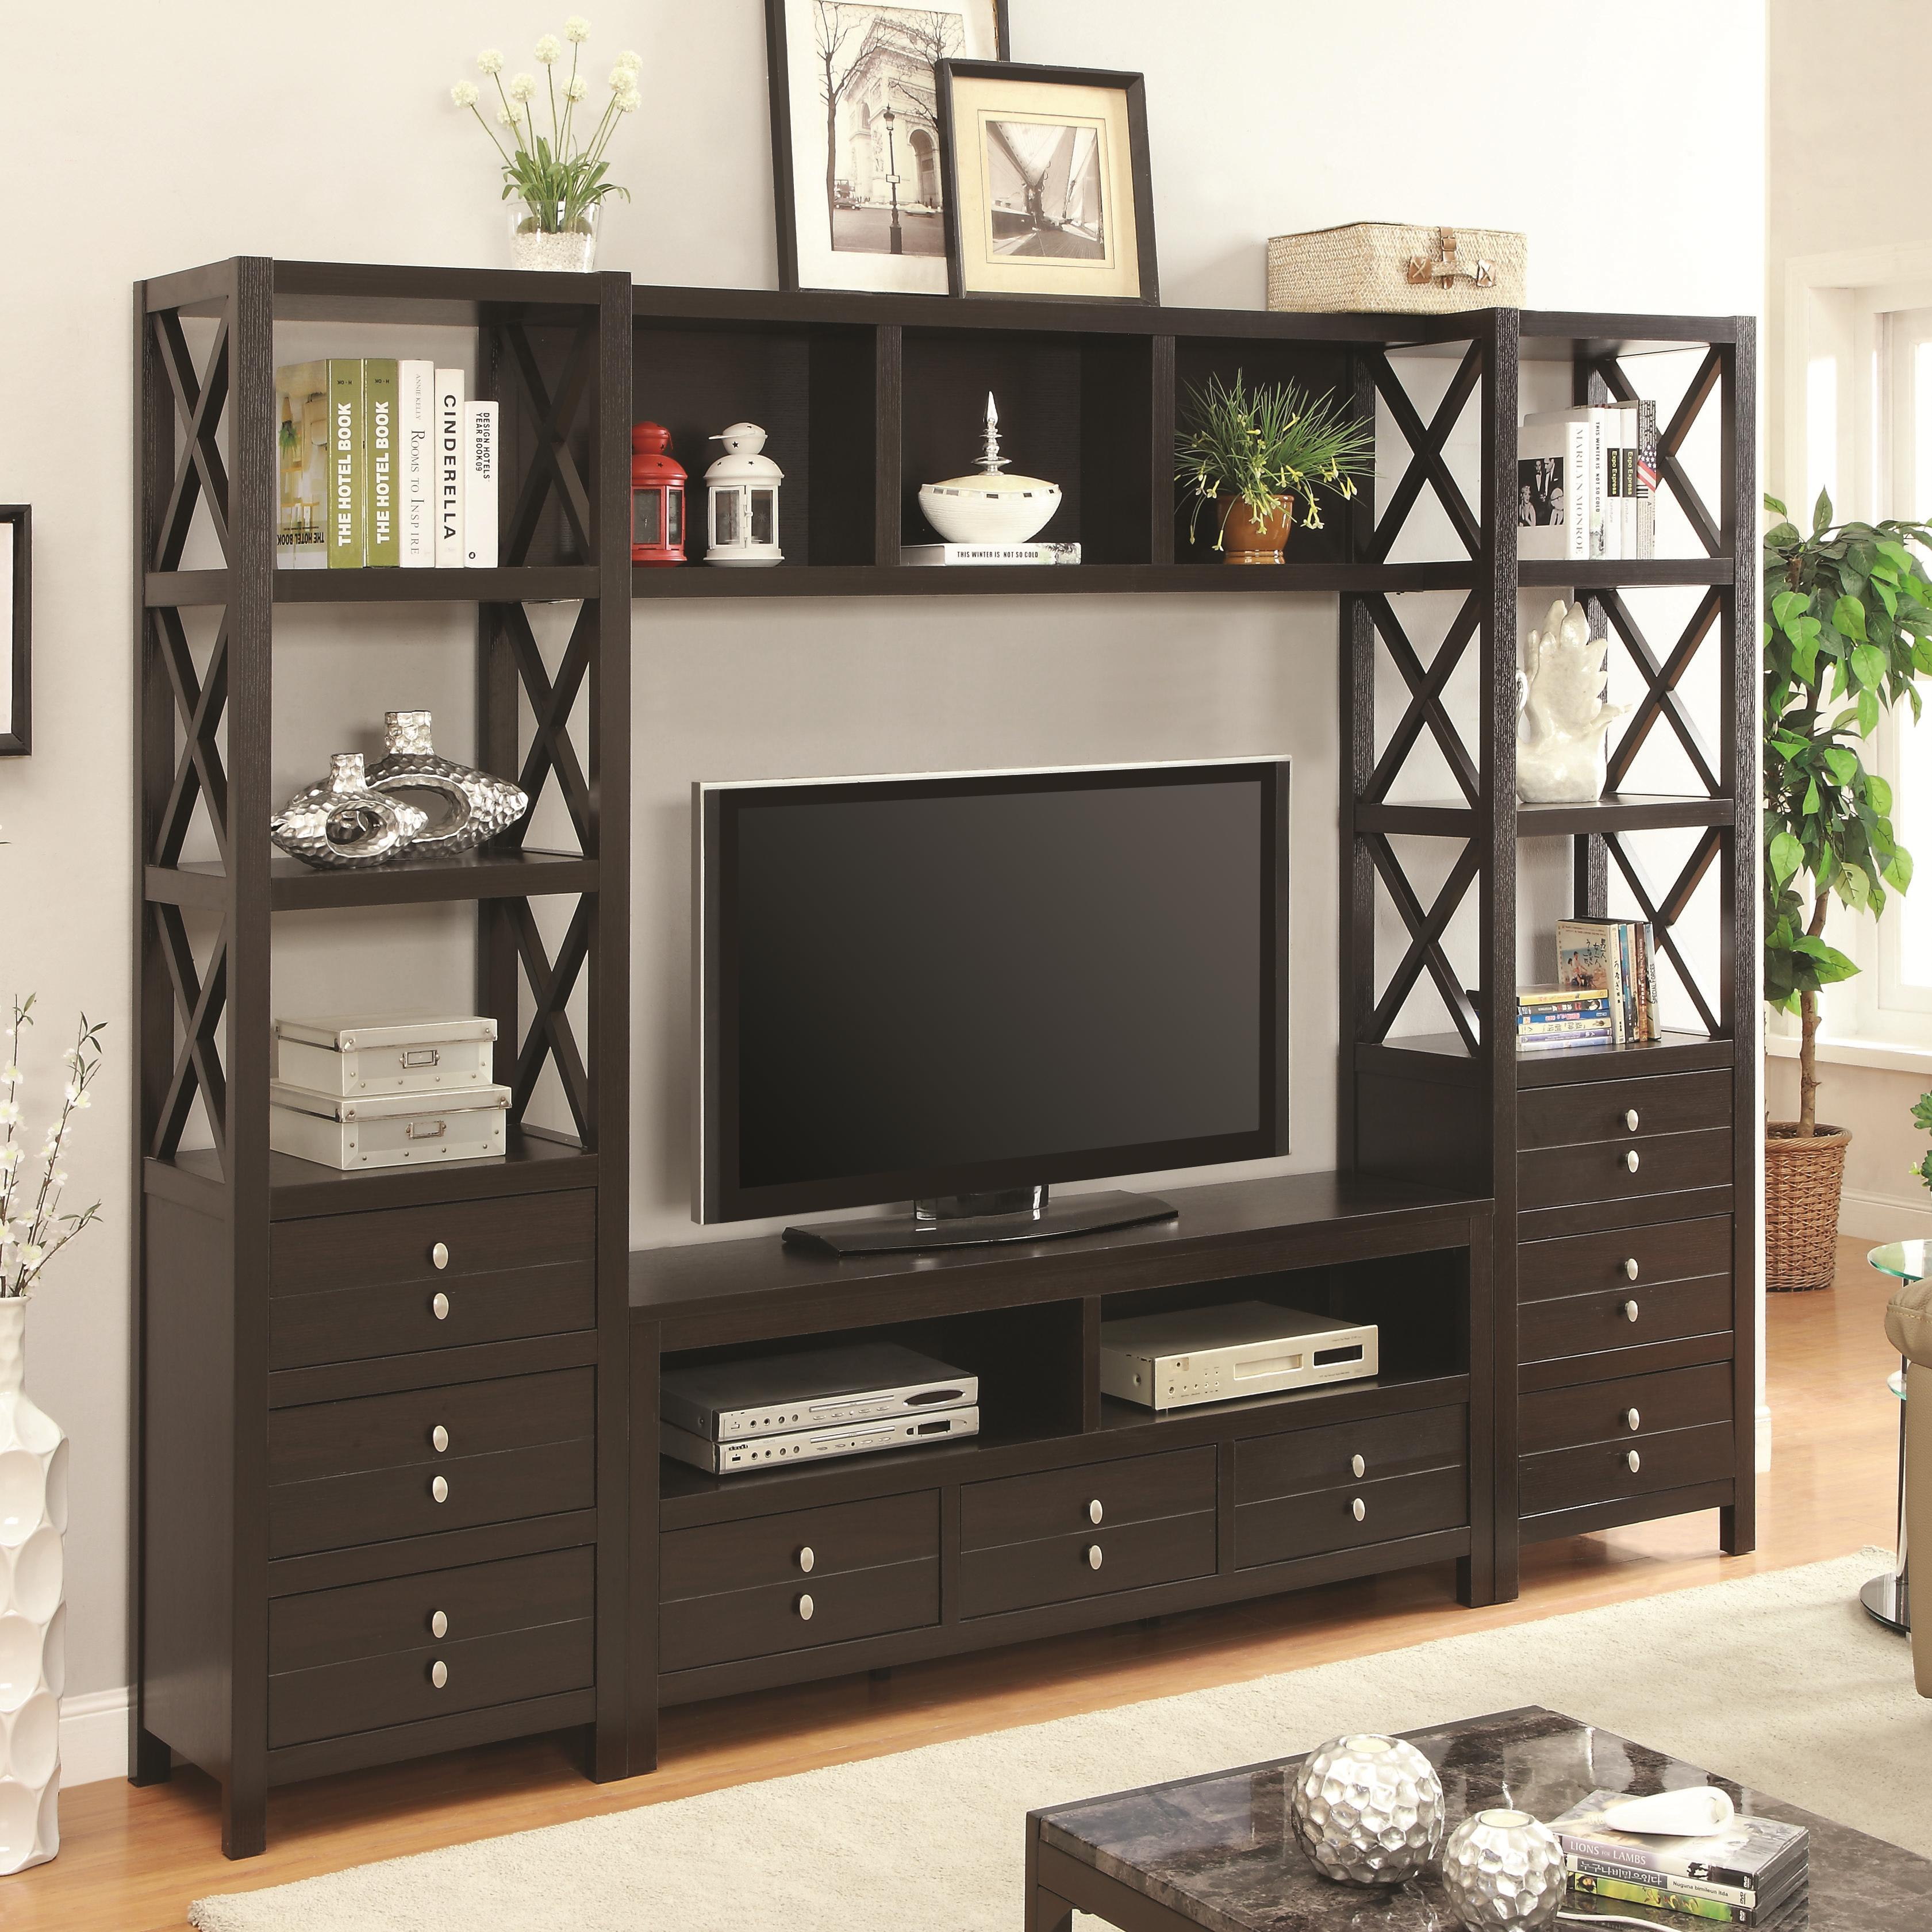 Tv Units Entertainment Units Entertainment Wall Unit With 9 Drawers And 9 Shelves By Coaster At Northeast Factory Direct